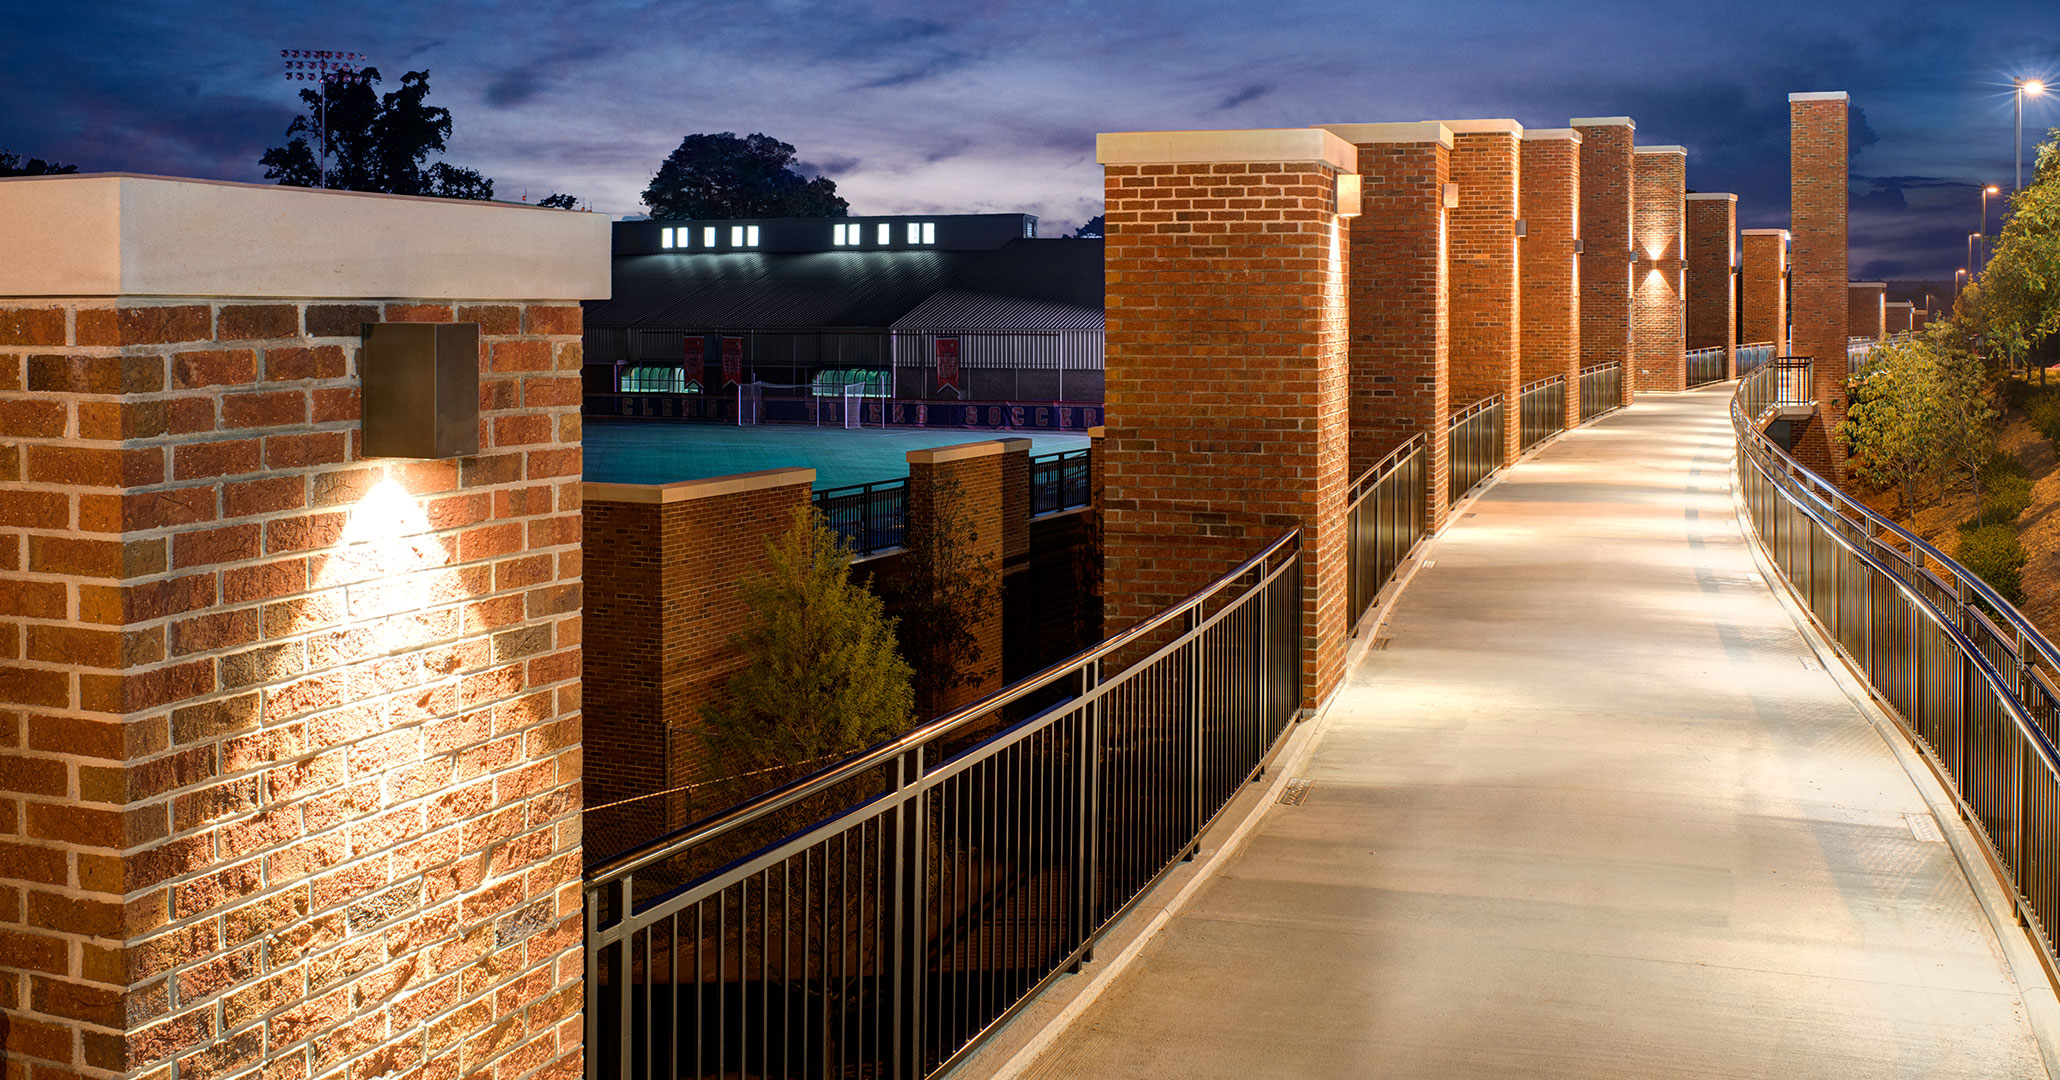 Clemson University hired Boudreaux architects to build a student walkway.